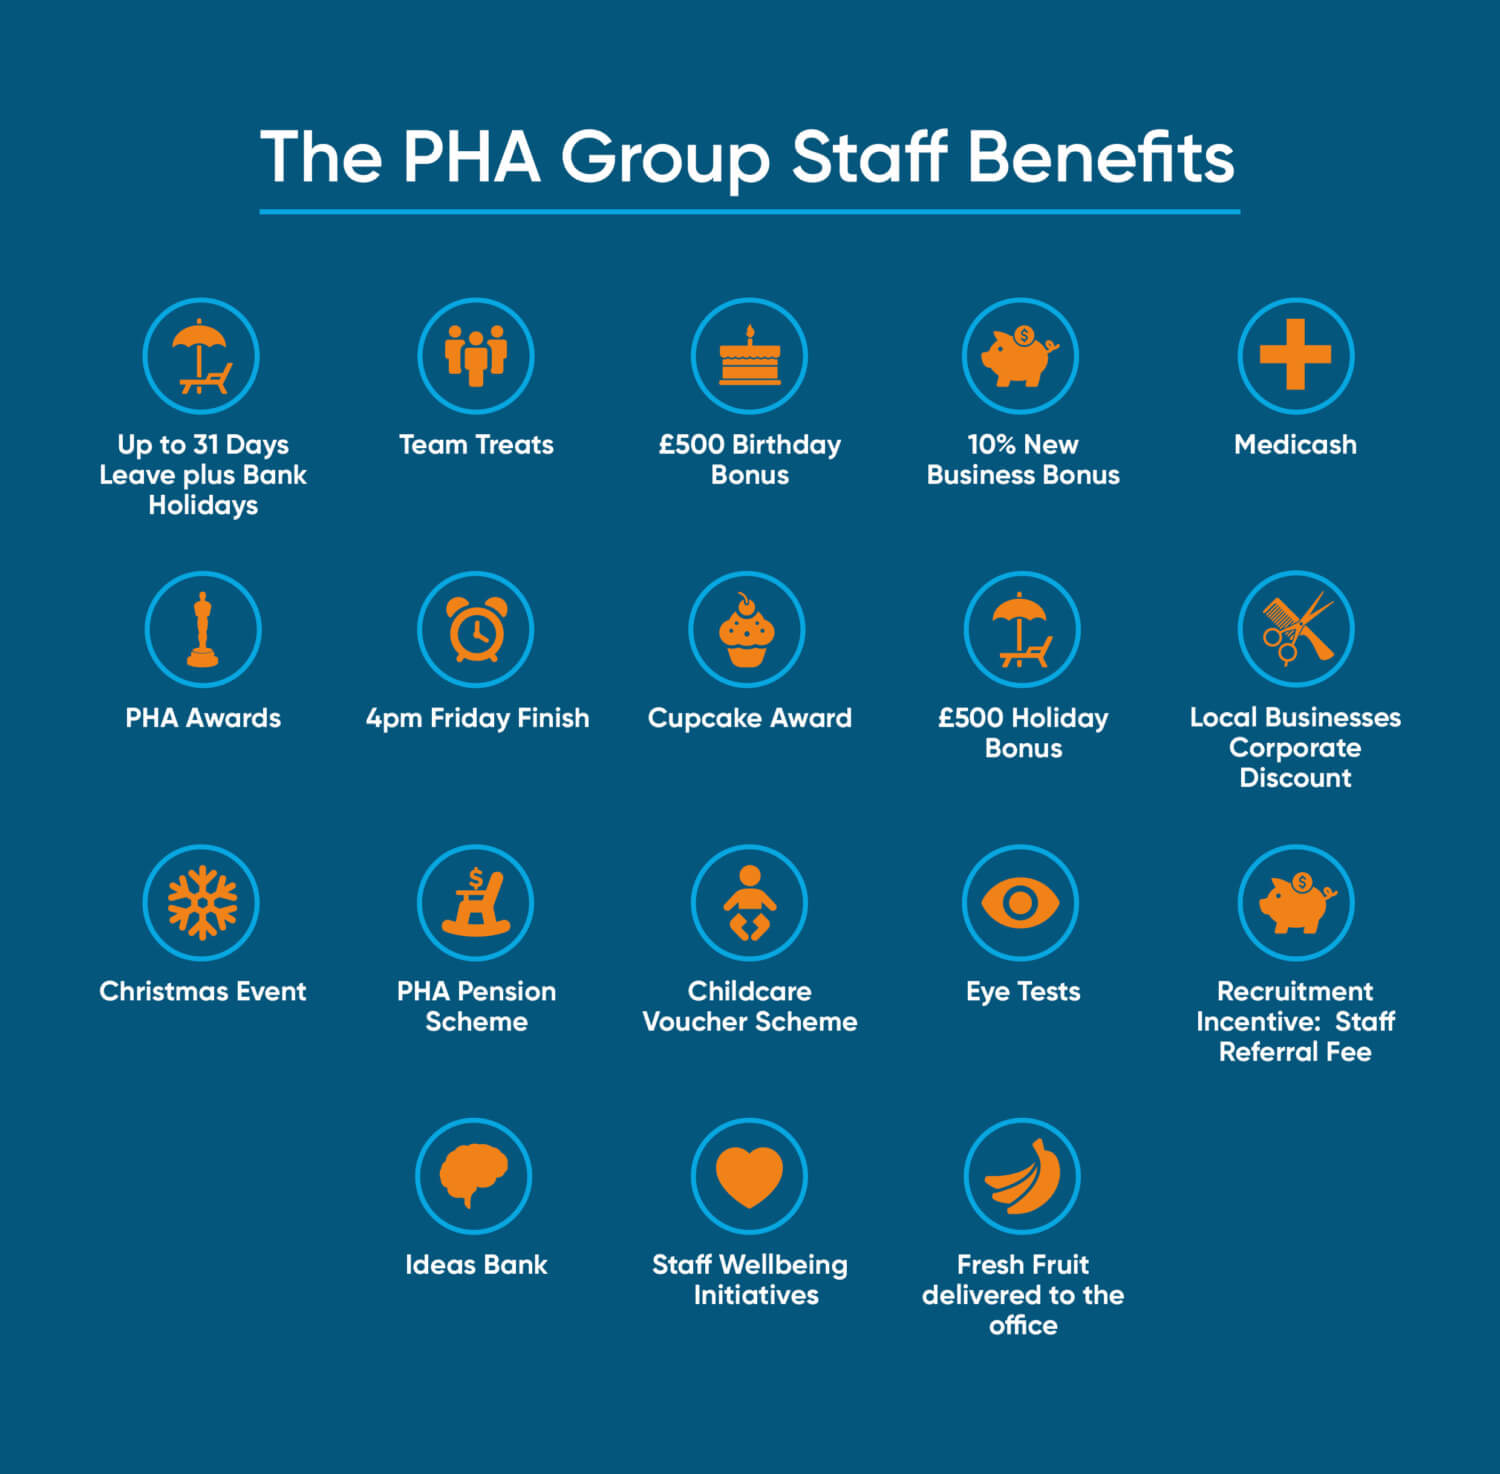 The PHA Group staff benefits